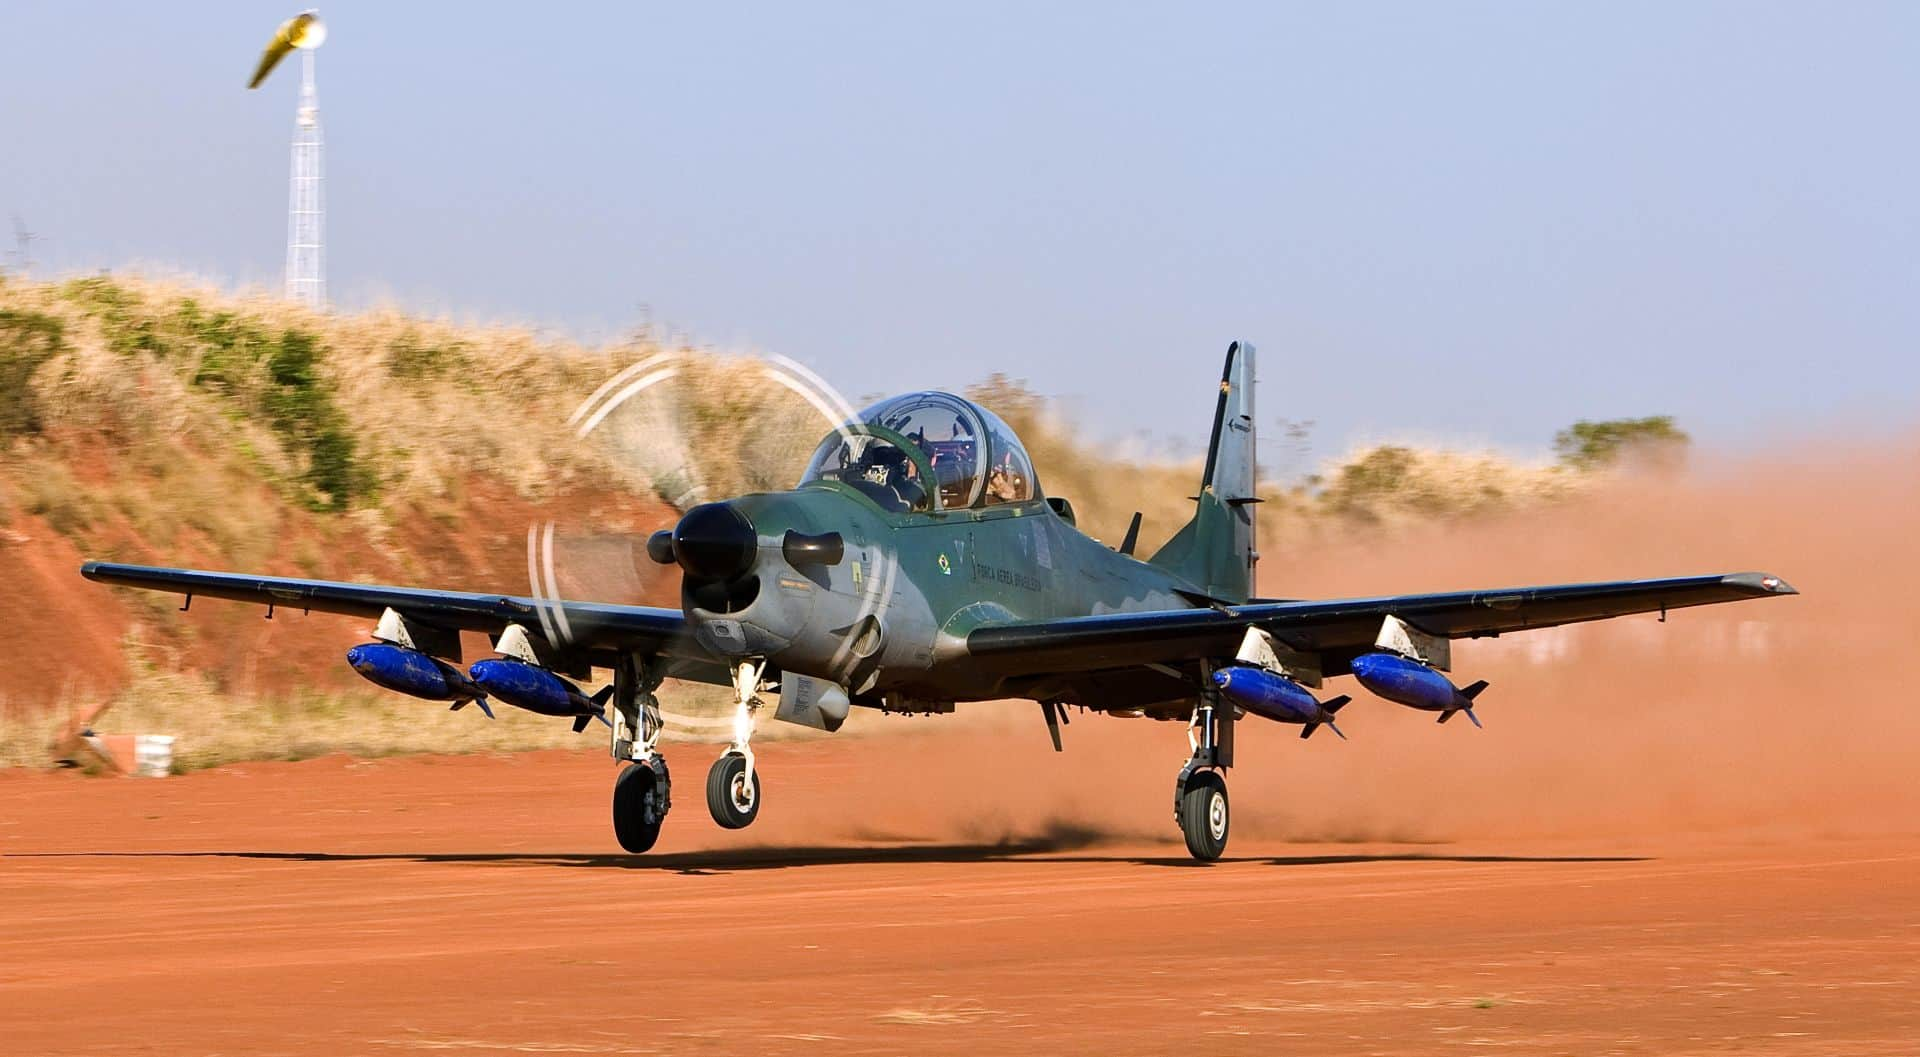 Philippine Air Force Selects the A-29 Super Tucano for Close